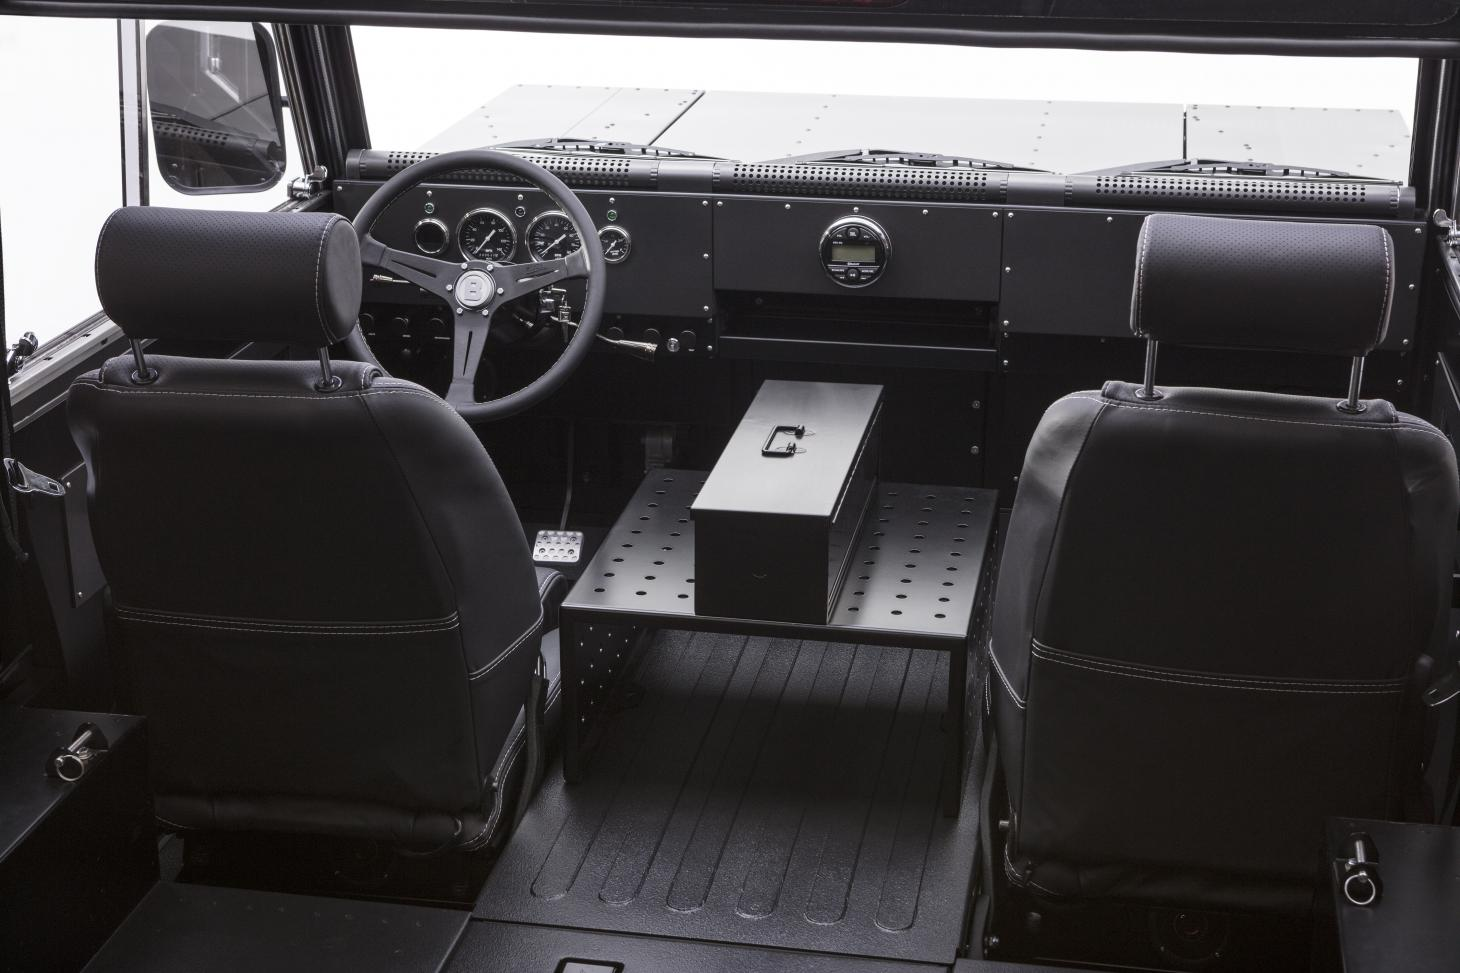 Interior view of Bollinger B1 utility car